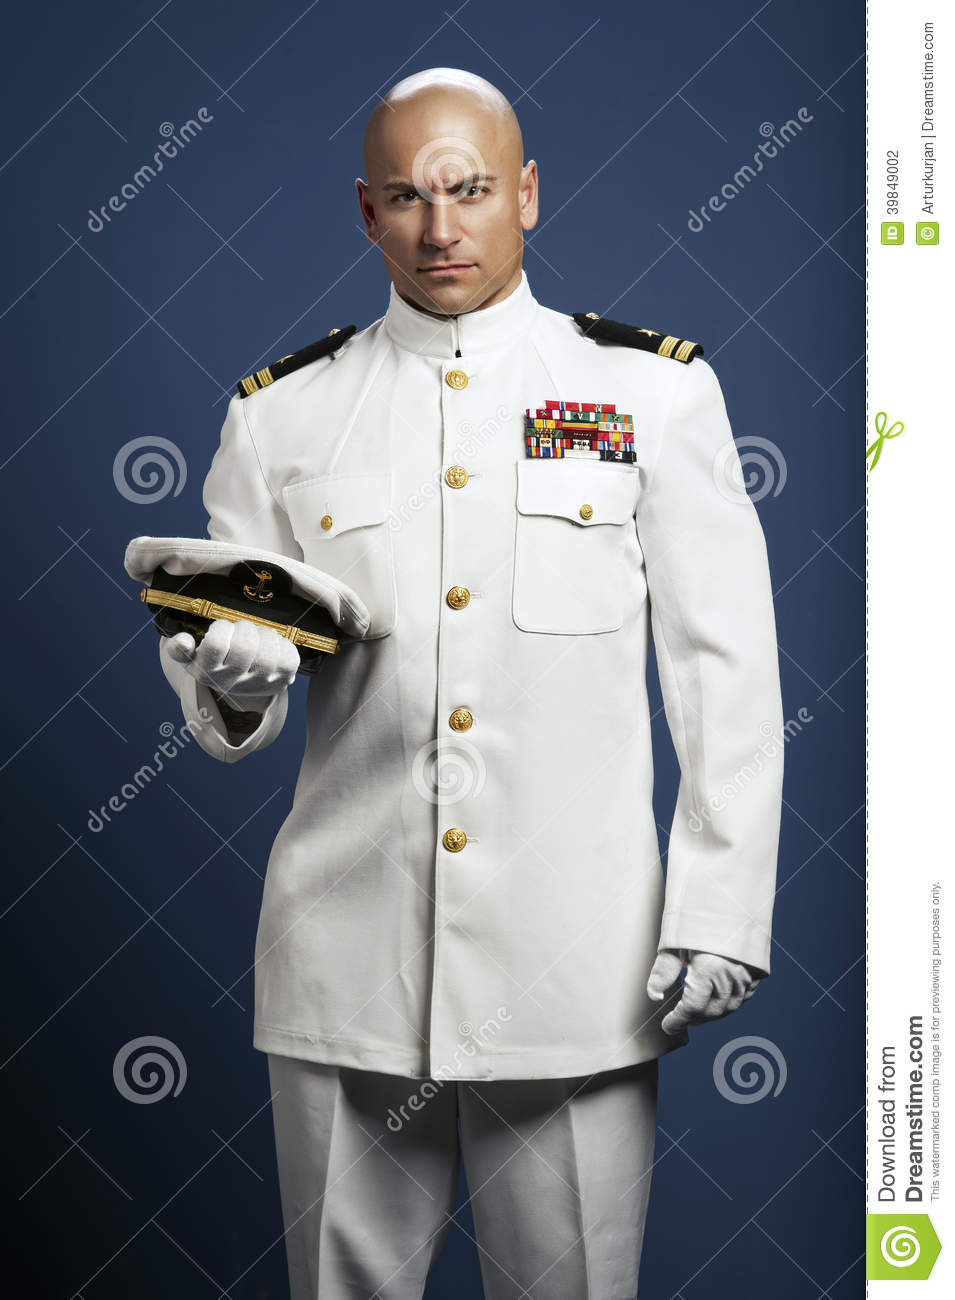 Handsome Captain Sea Ship Stock Photo Image 39849002